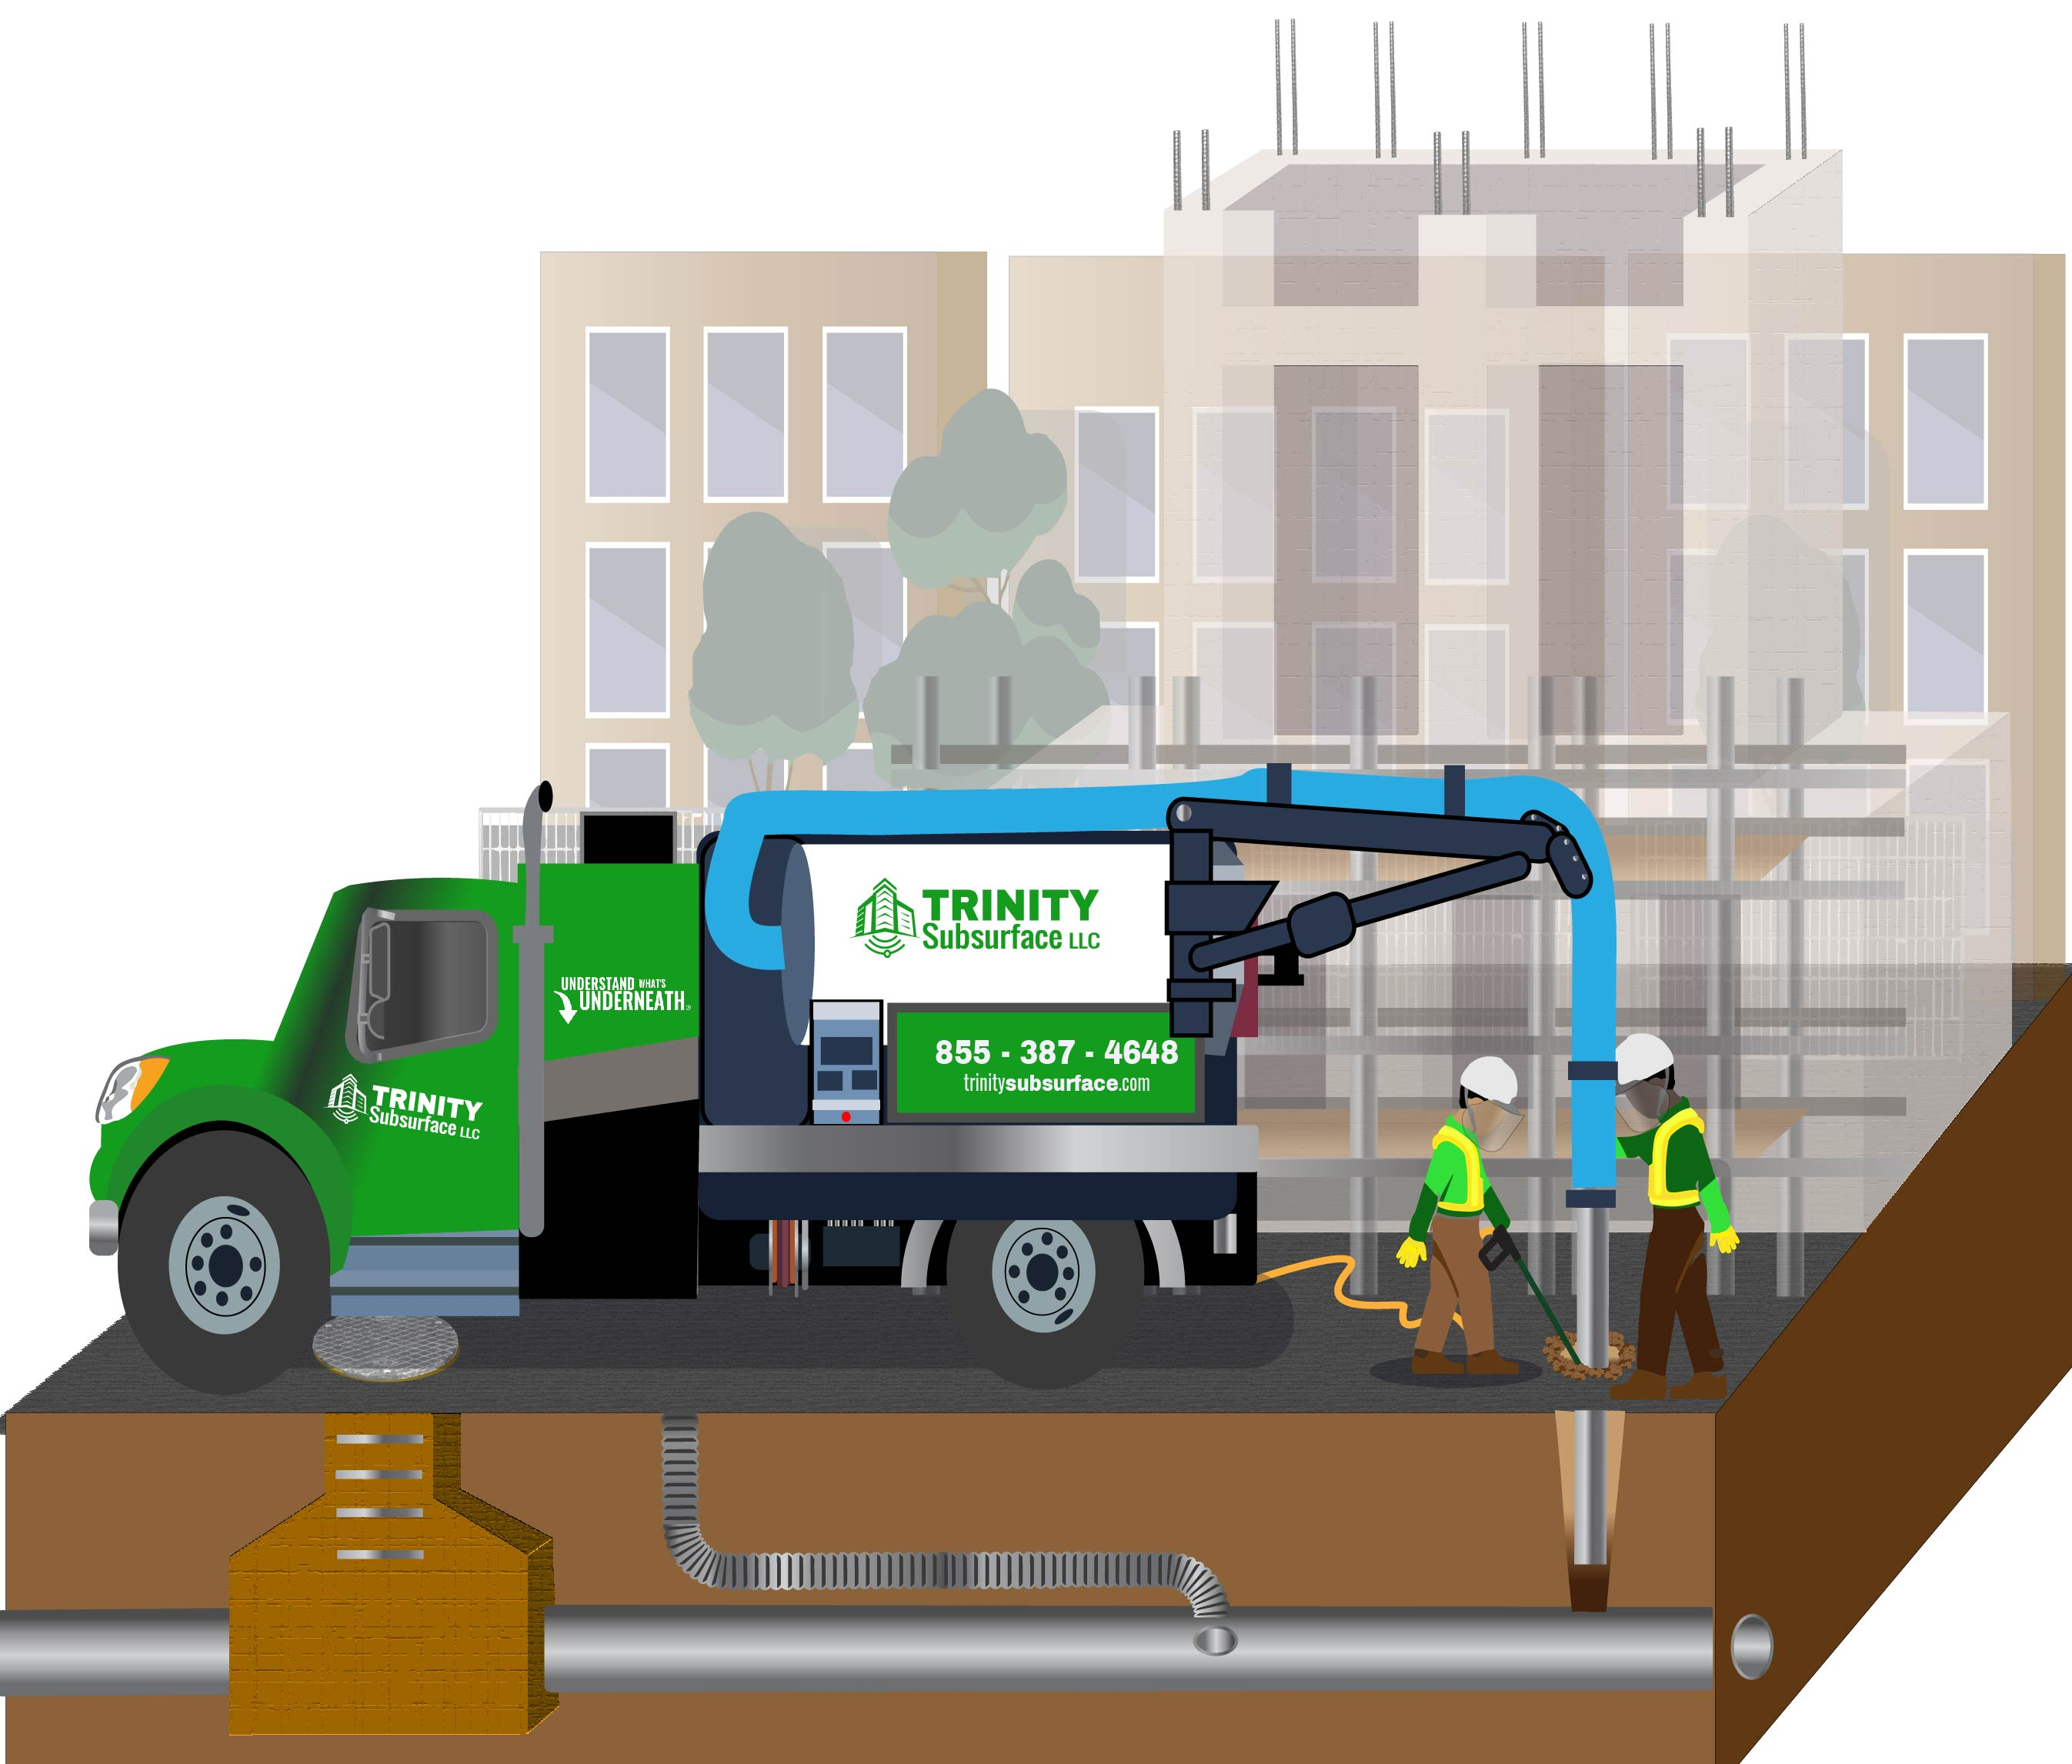 trinity subsurface schedules work in vacuum excavation for engineers in diagram